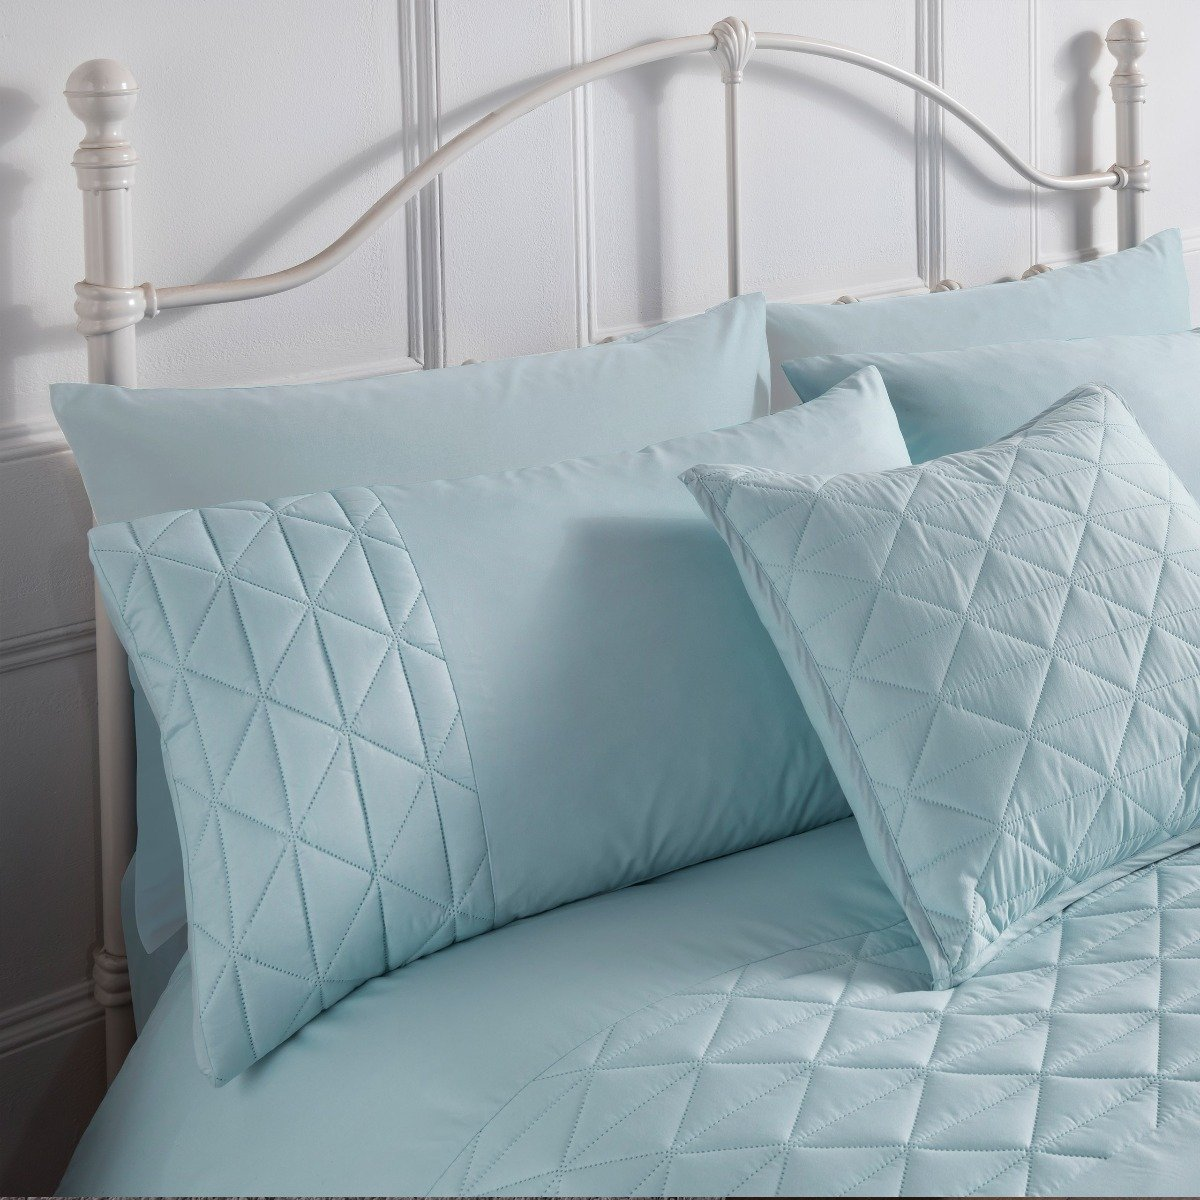 Pinsonic Blue Bedding - Reversible Duvet Cover and Pillowcase Set